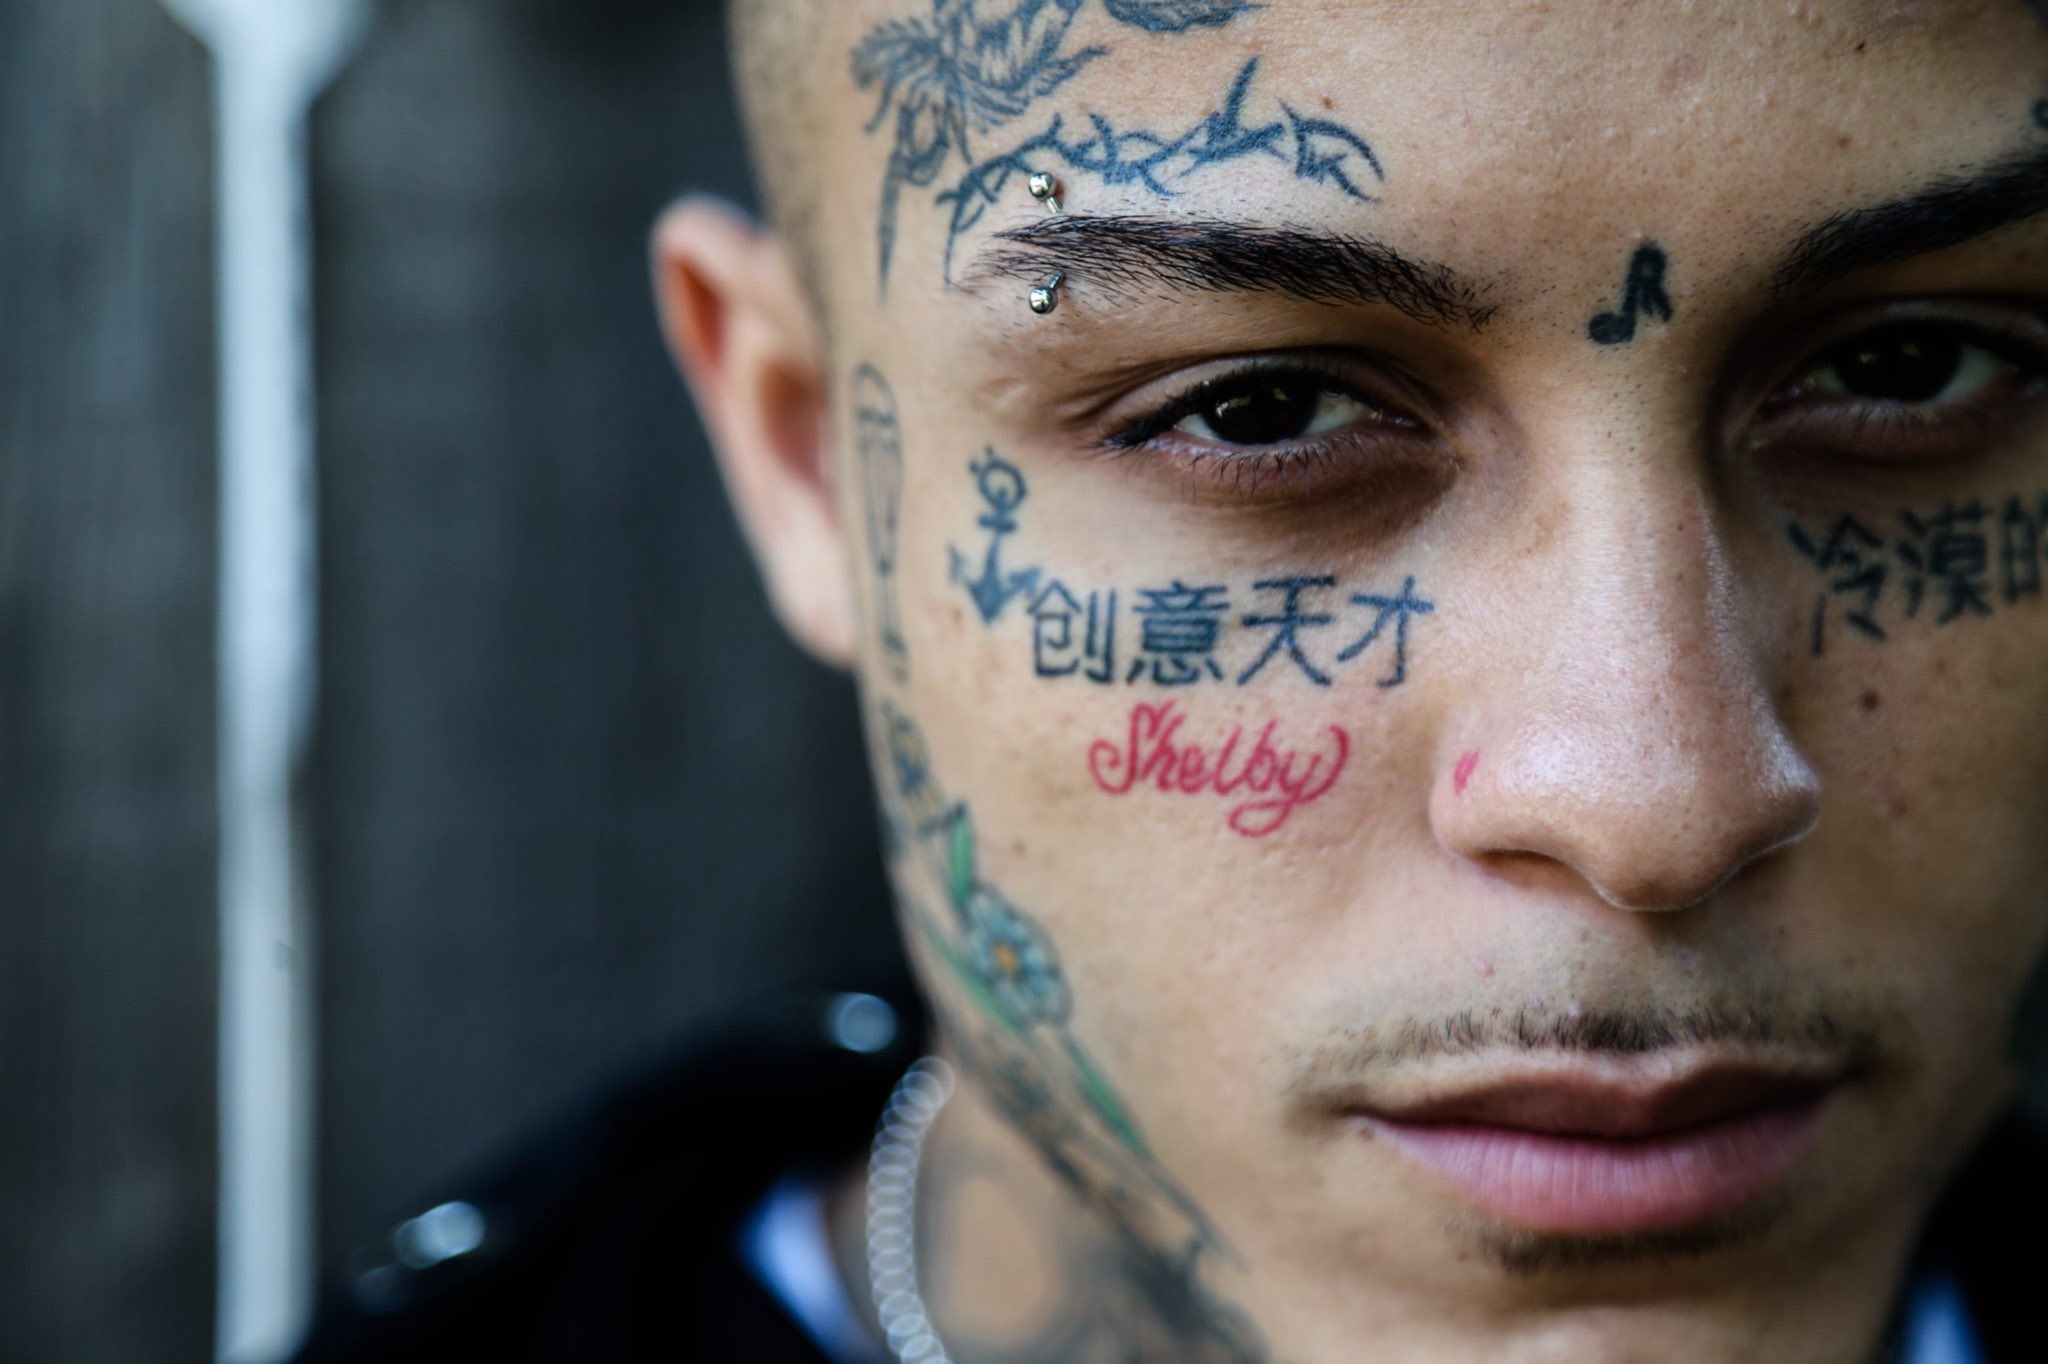 Pin by danicaAkima on tattoos (With images) Lil skies